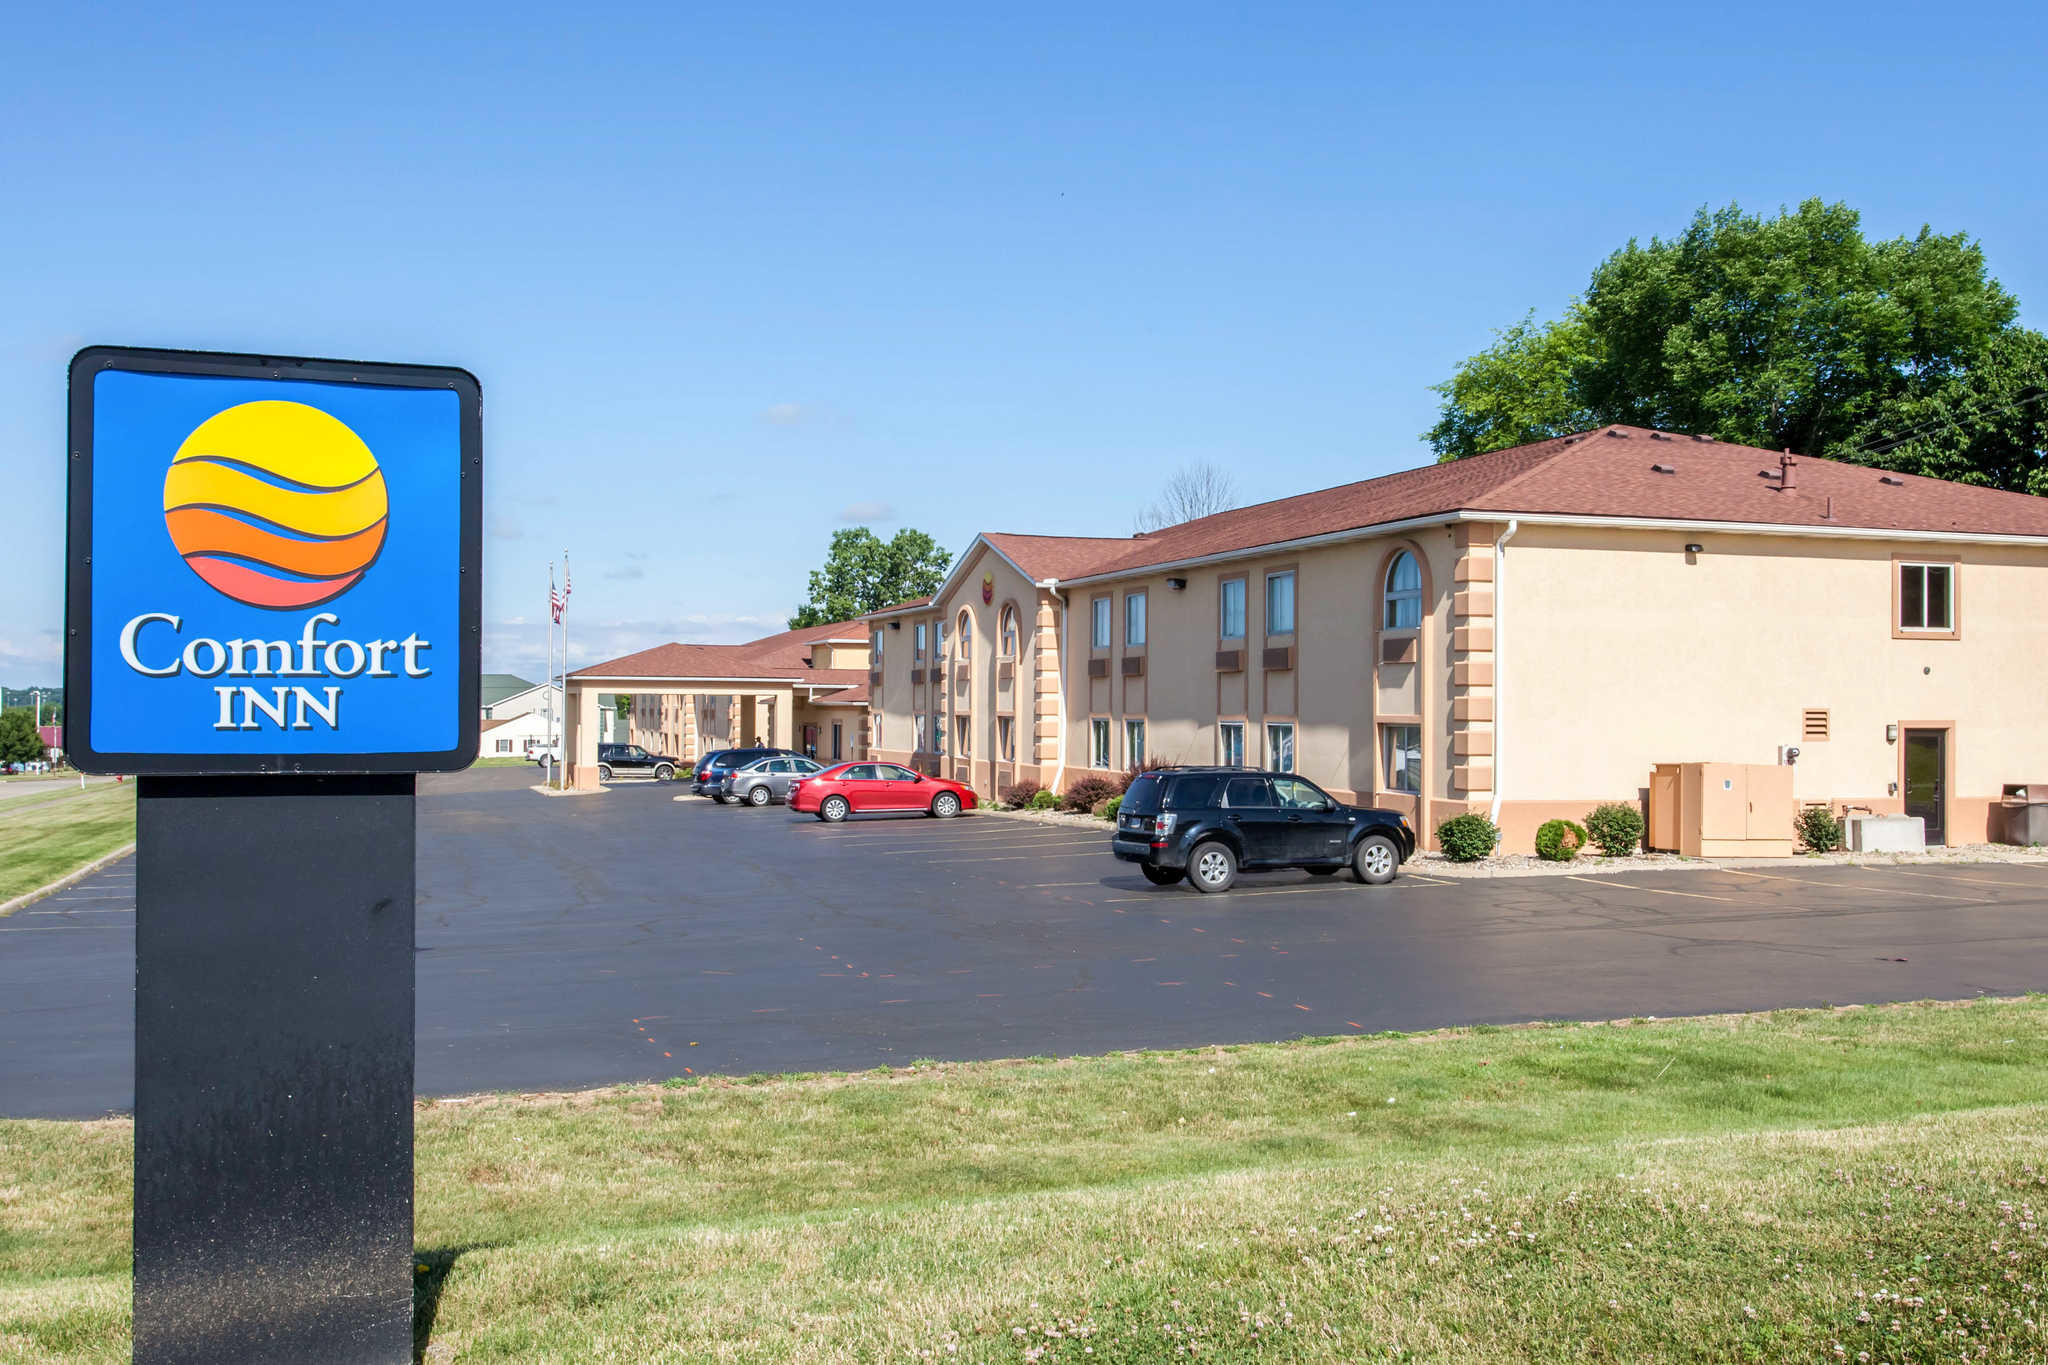 Comfort Inn In Seville Oh 330 769 4